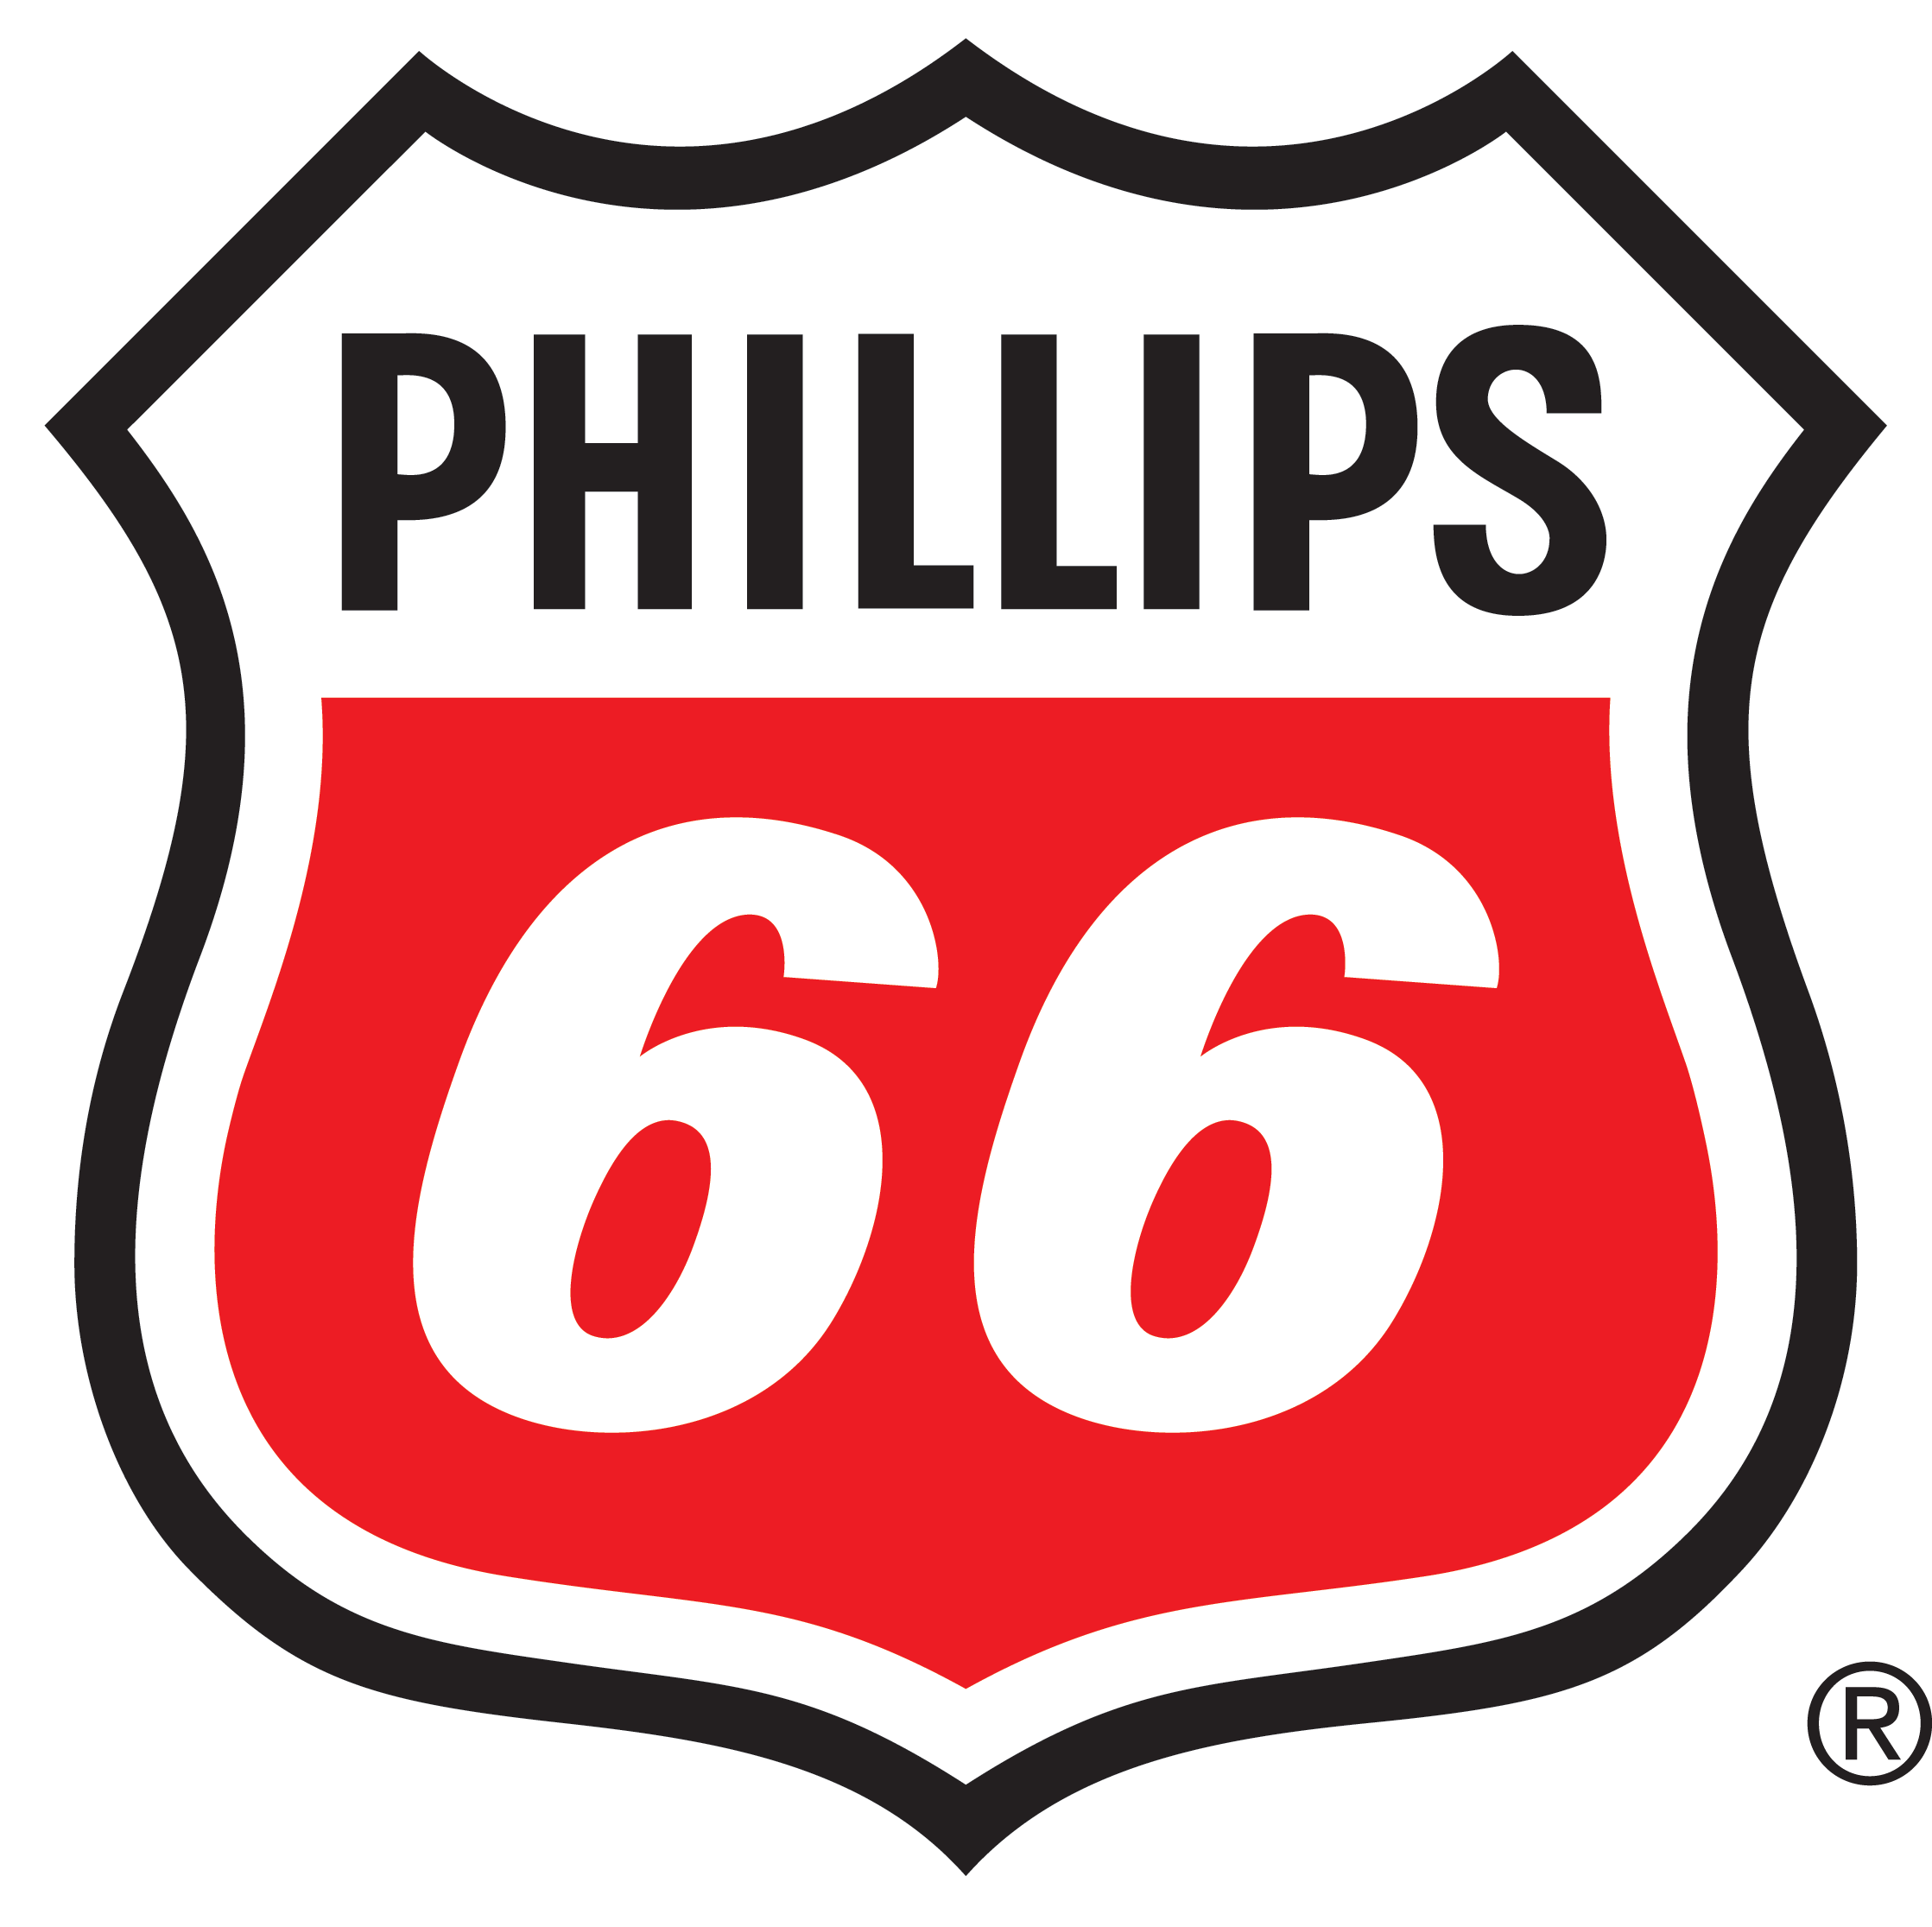 Phillips 66 Corporate Logo Shield Only RGBColor